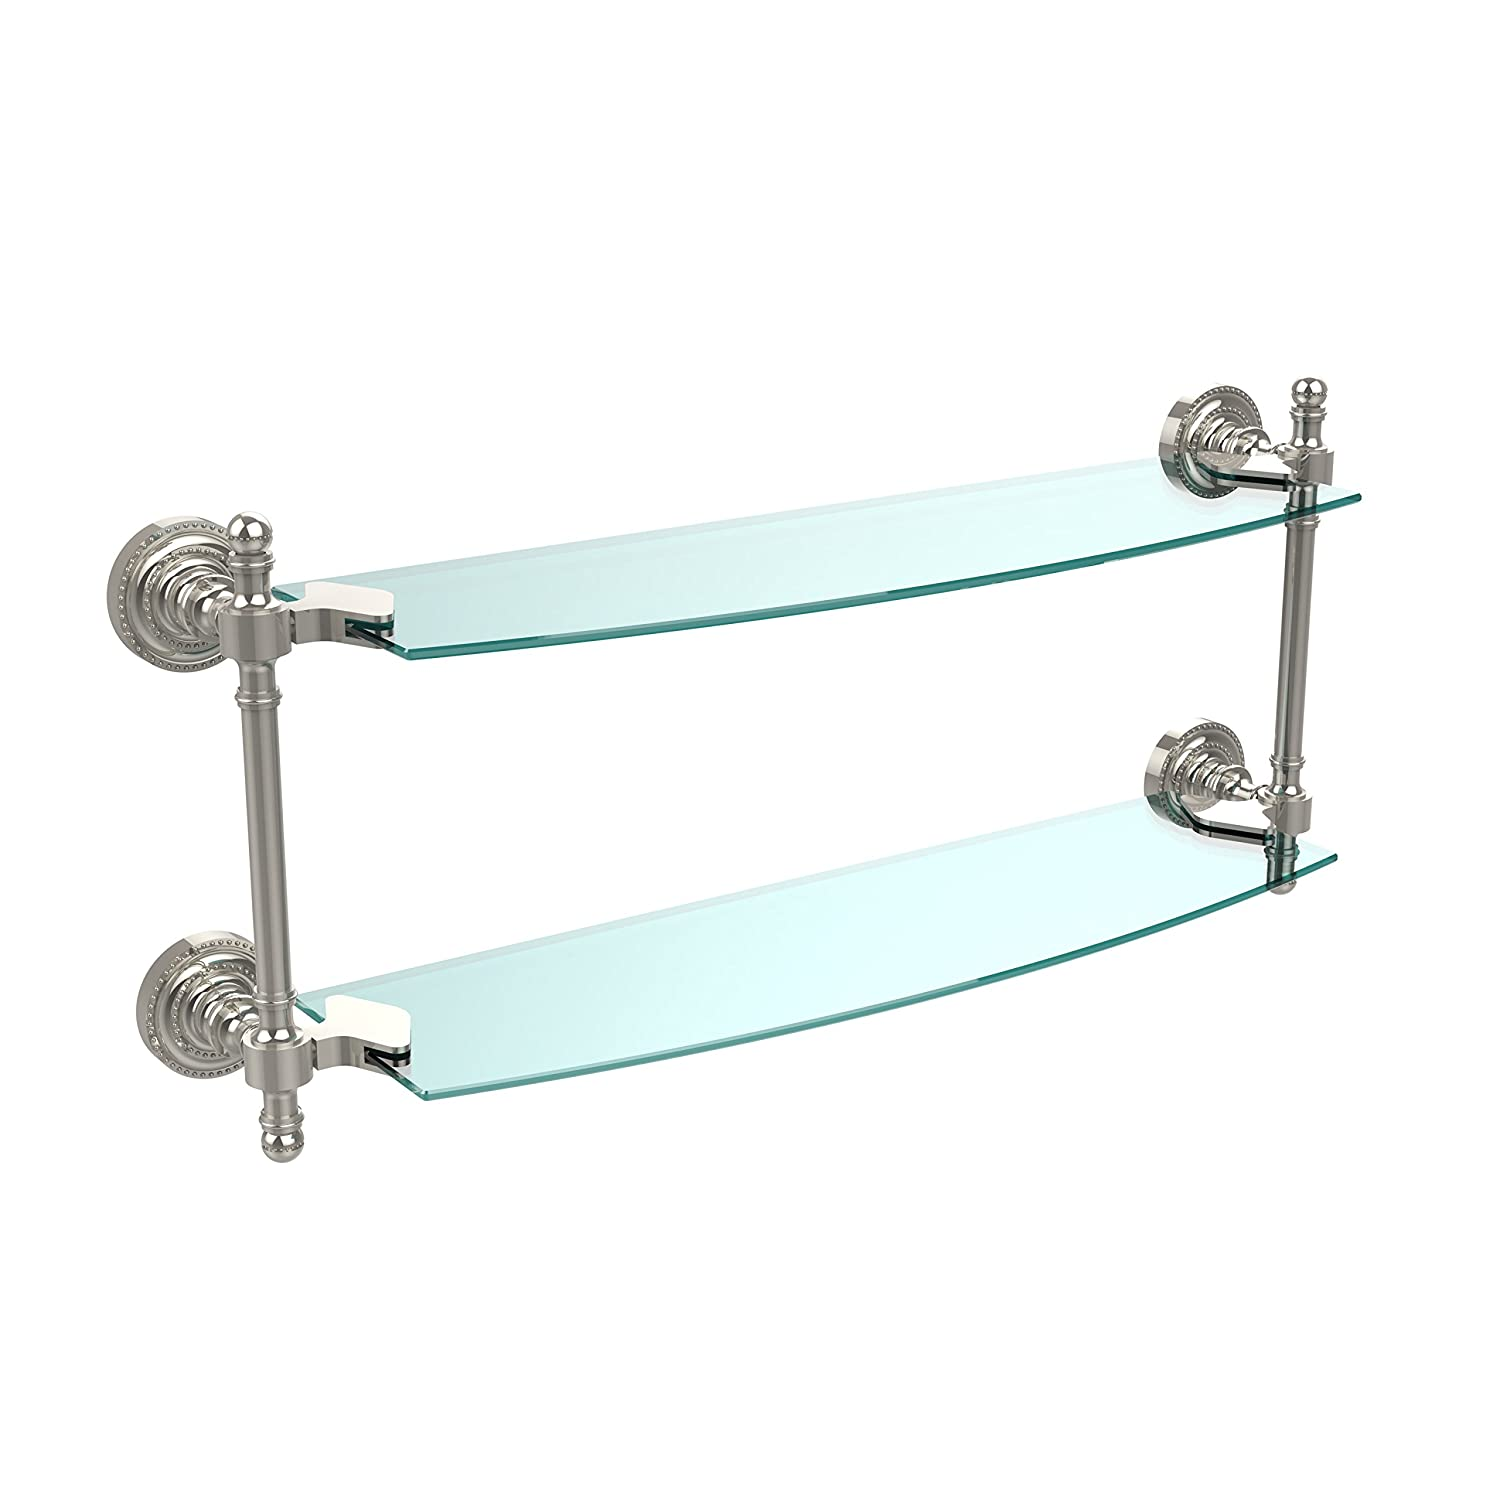 Allied Brass RD-34/18-SN 18 x 5 Double Glass Shelf Antique Copper by Allied Brass B002CQ5JYC  光沢ニッケル 18 Inch